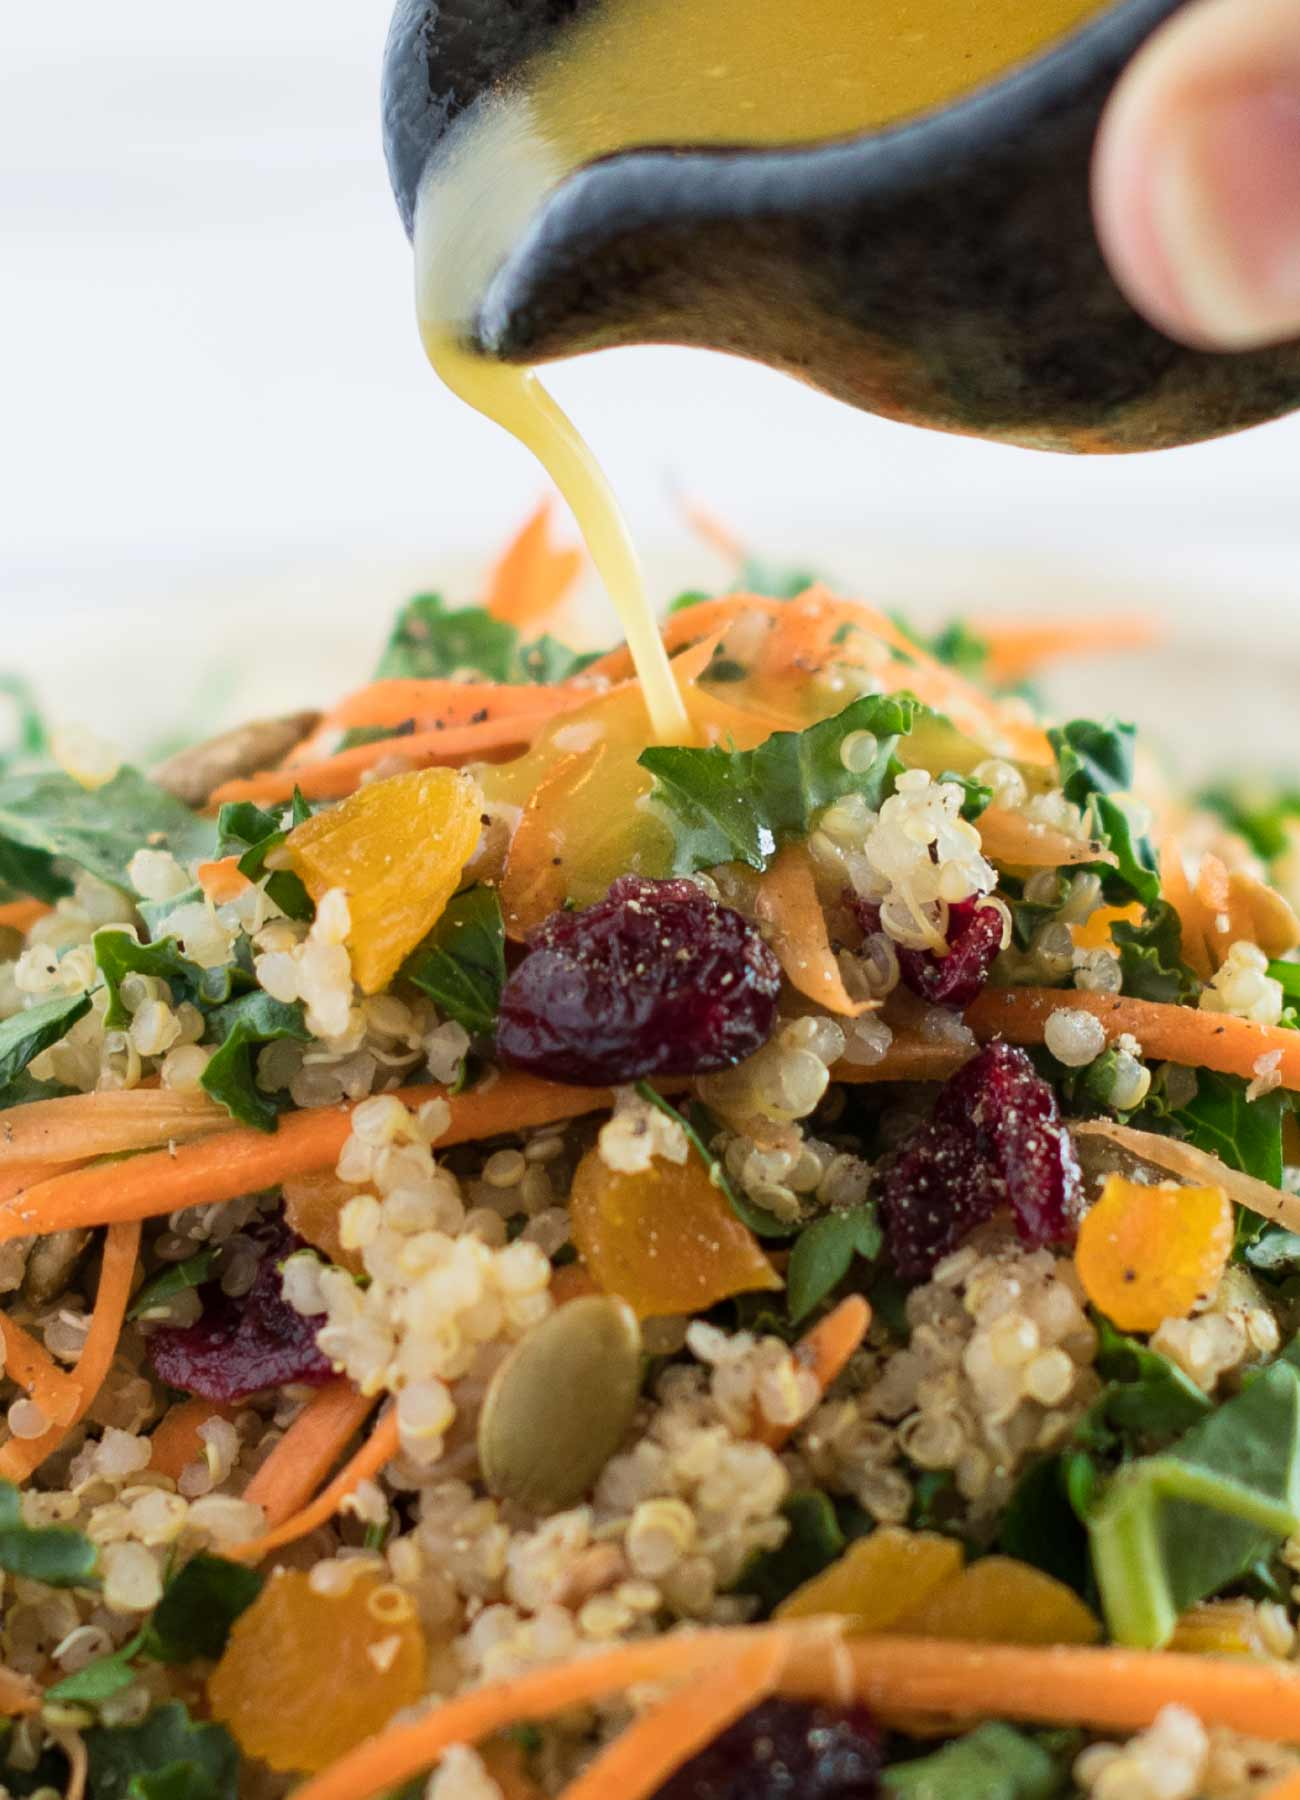 Citrus maple dressing pouring over kale and quinoa salad.